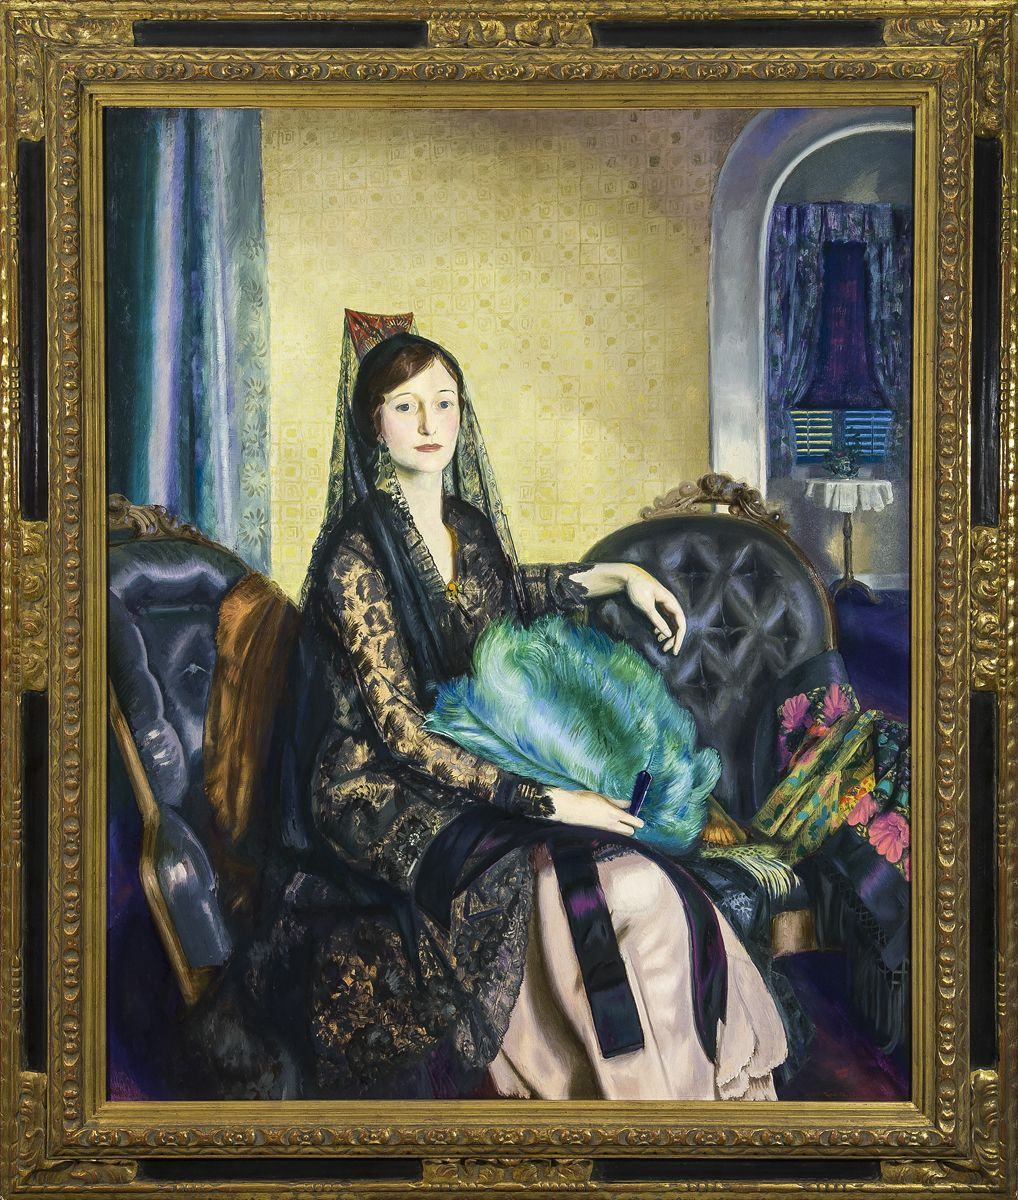 GEORGE WESLEY BELLOWS (1882–1925). Portrait of Elizabeth Alexander, 1924. Oil on canvas, 53 x 43 in.